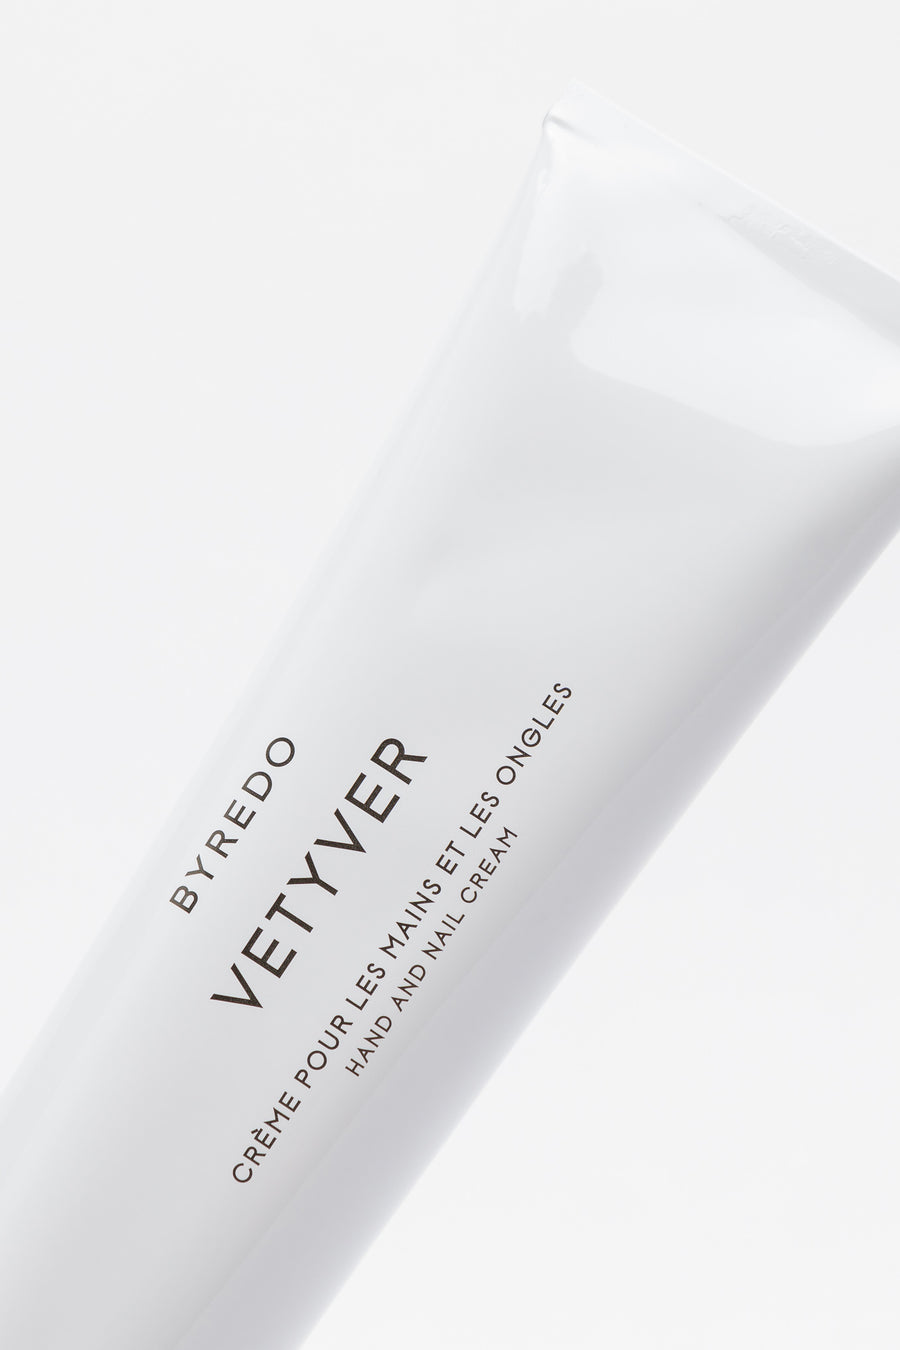 BYREDO Vetyver Hand and Nail Cream 100ml - Notre